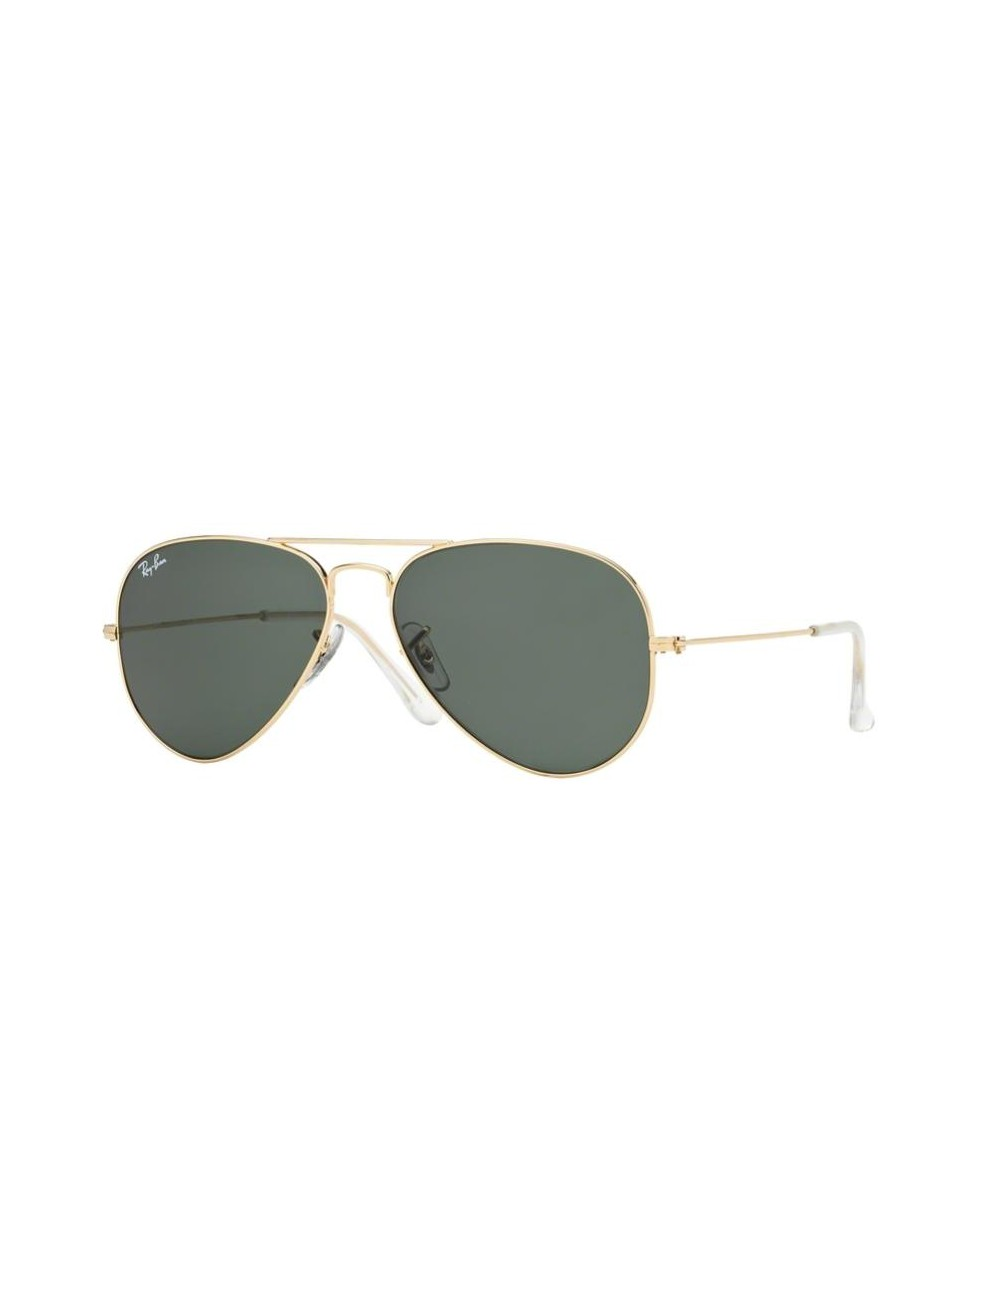 Ray Or W3234 Soleil Lunettes Ban Large Metal De Rb3025 Aviator Nwm8OnyPv0